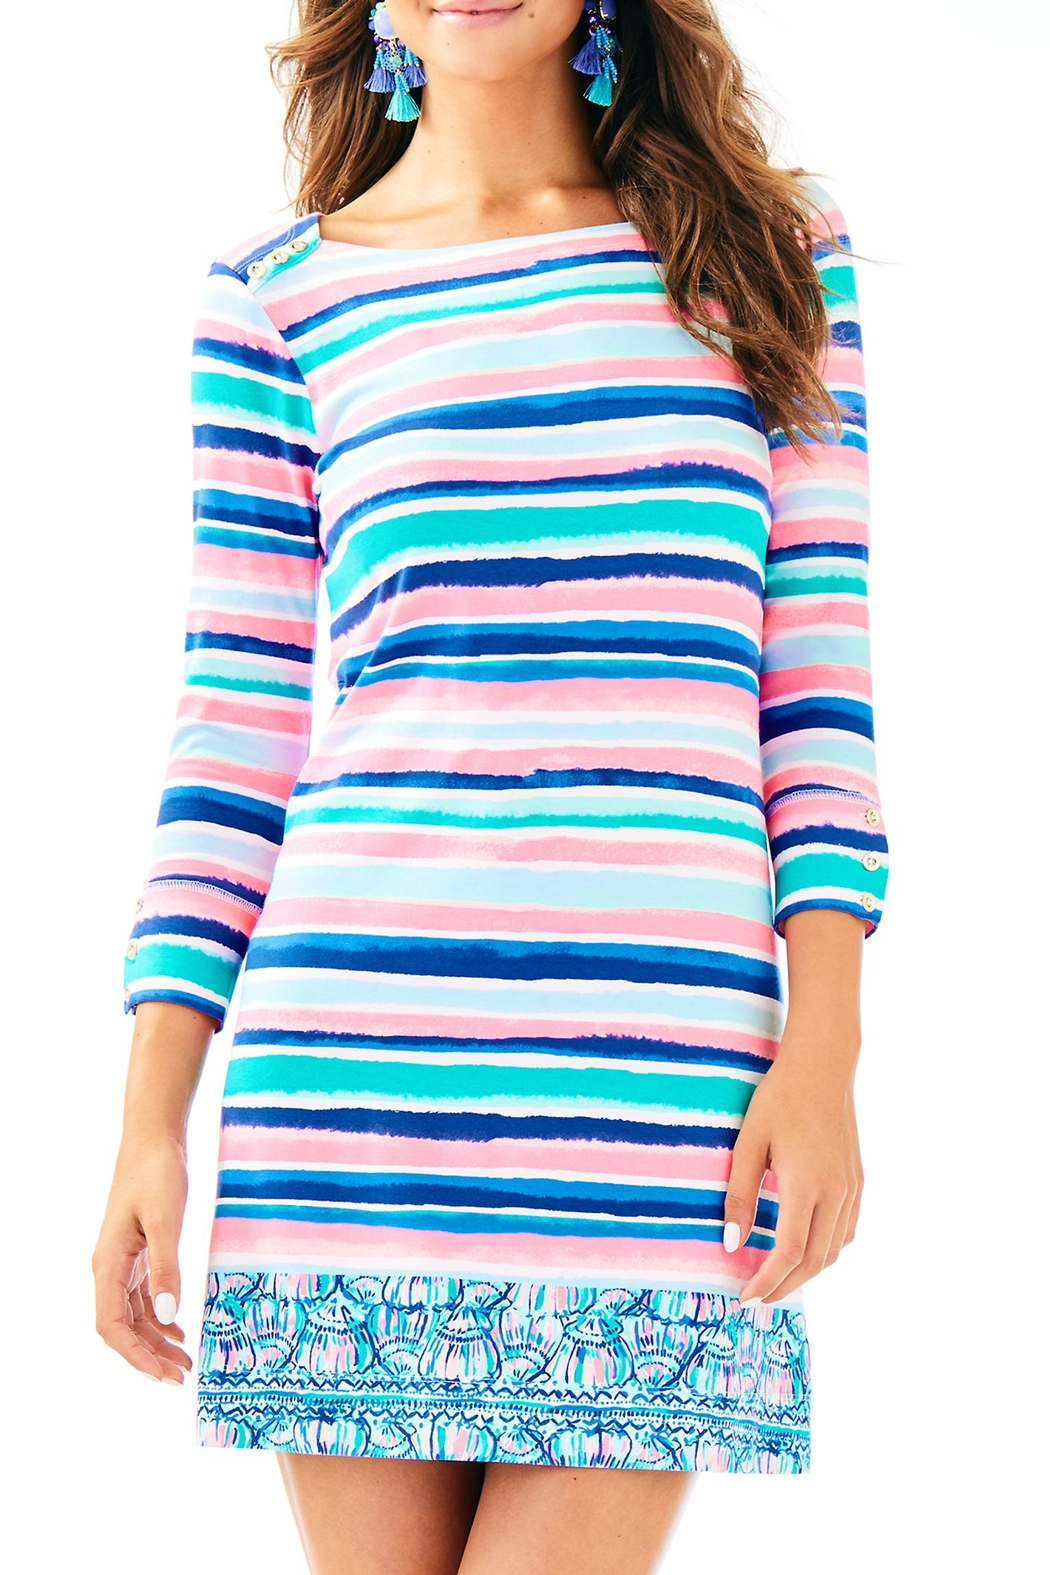 Lilly Pulitzer Upf50+ Sophie Dress - Main Image